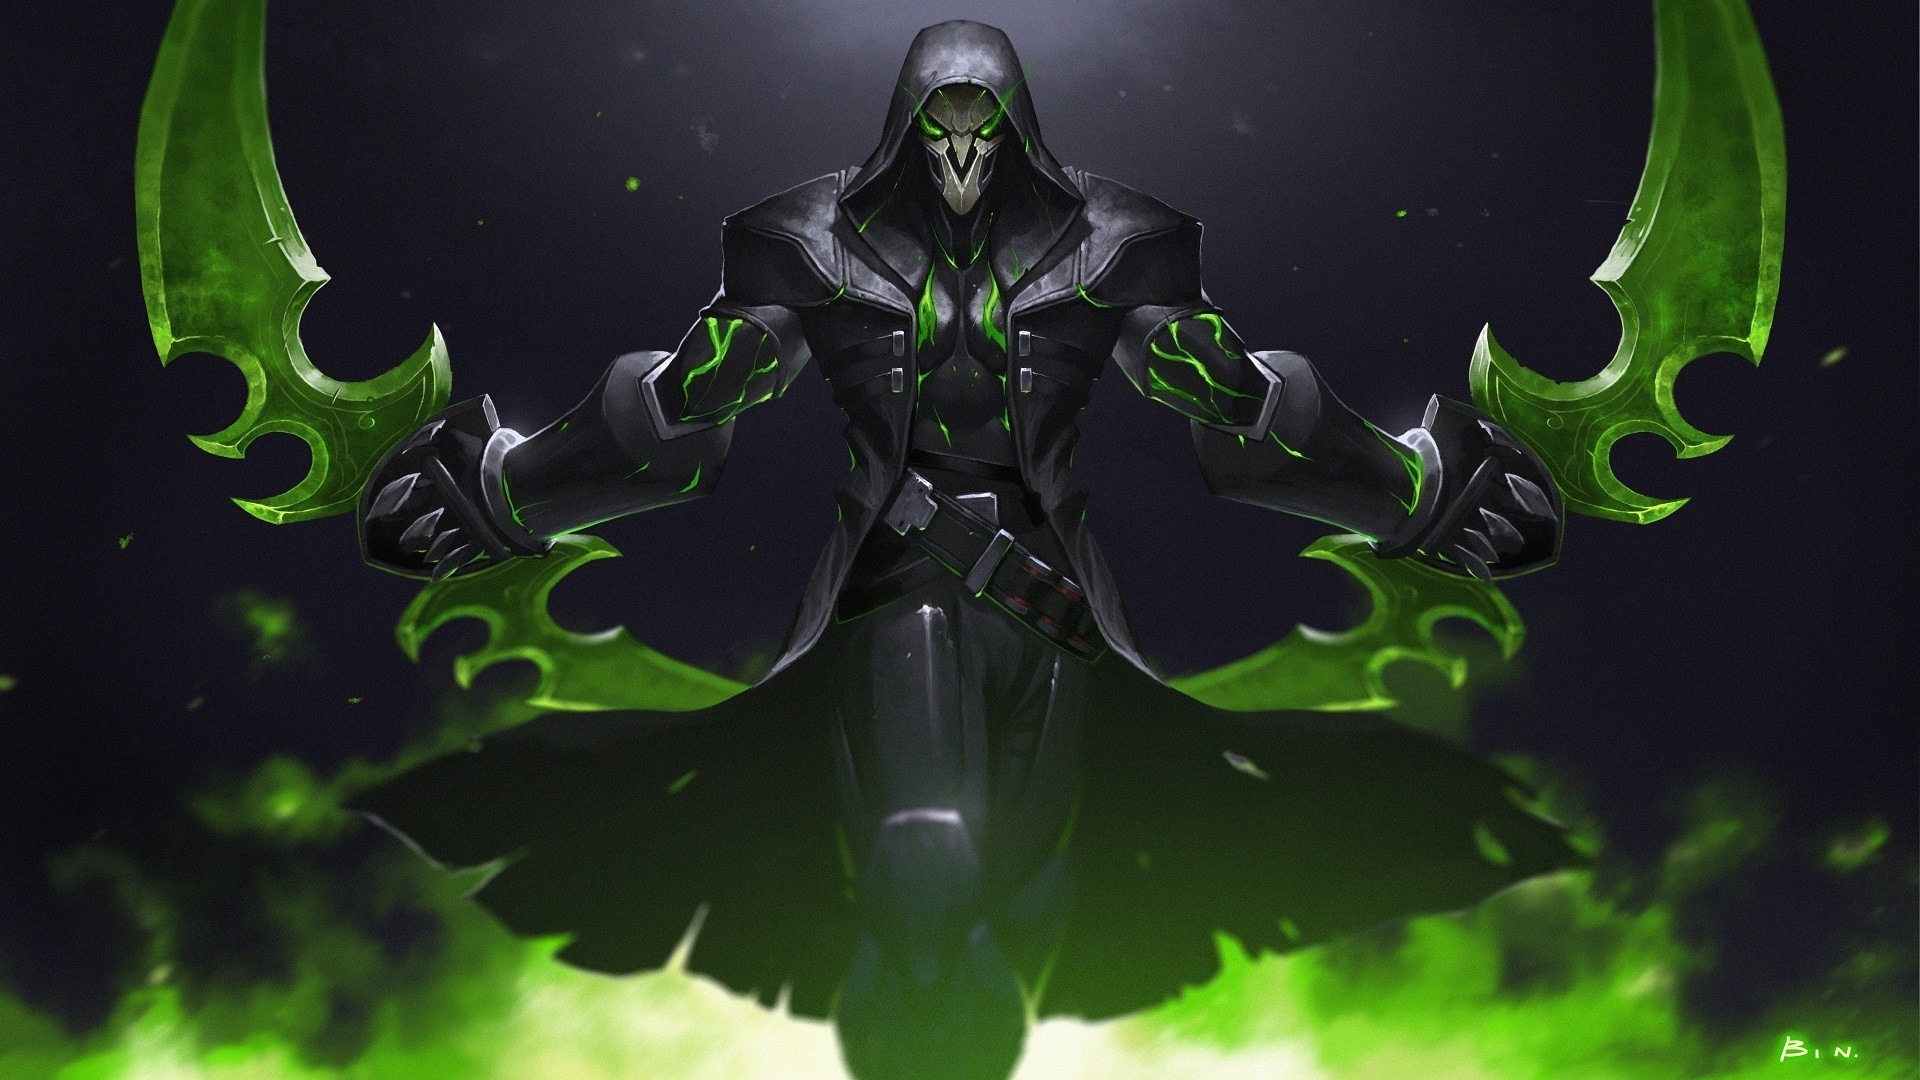 Download 1920x1080 wallpaper green reaper overwatch warrior online game full hd hdtv fhd - 1366x768 is 720p or 1080p ...